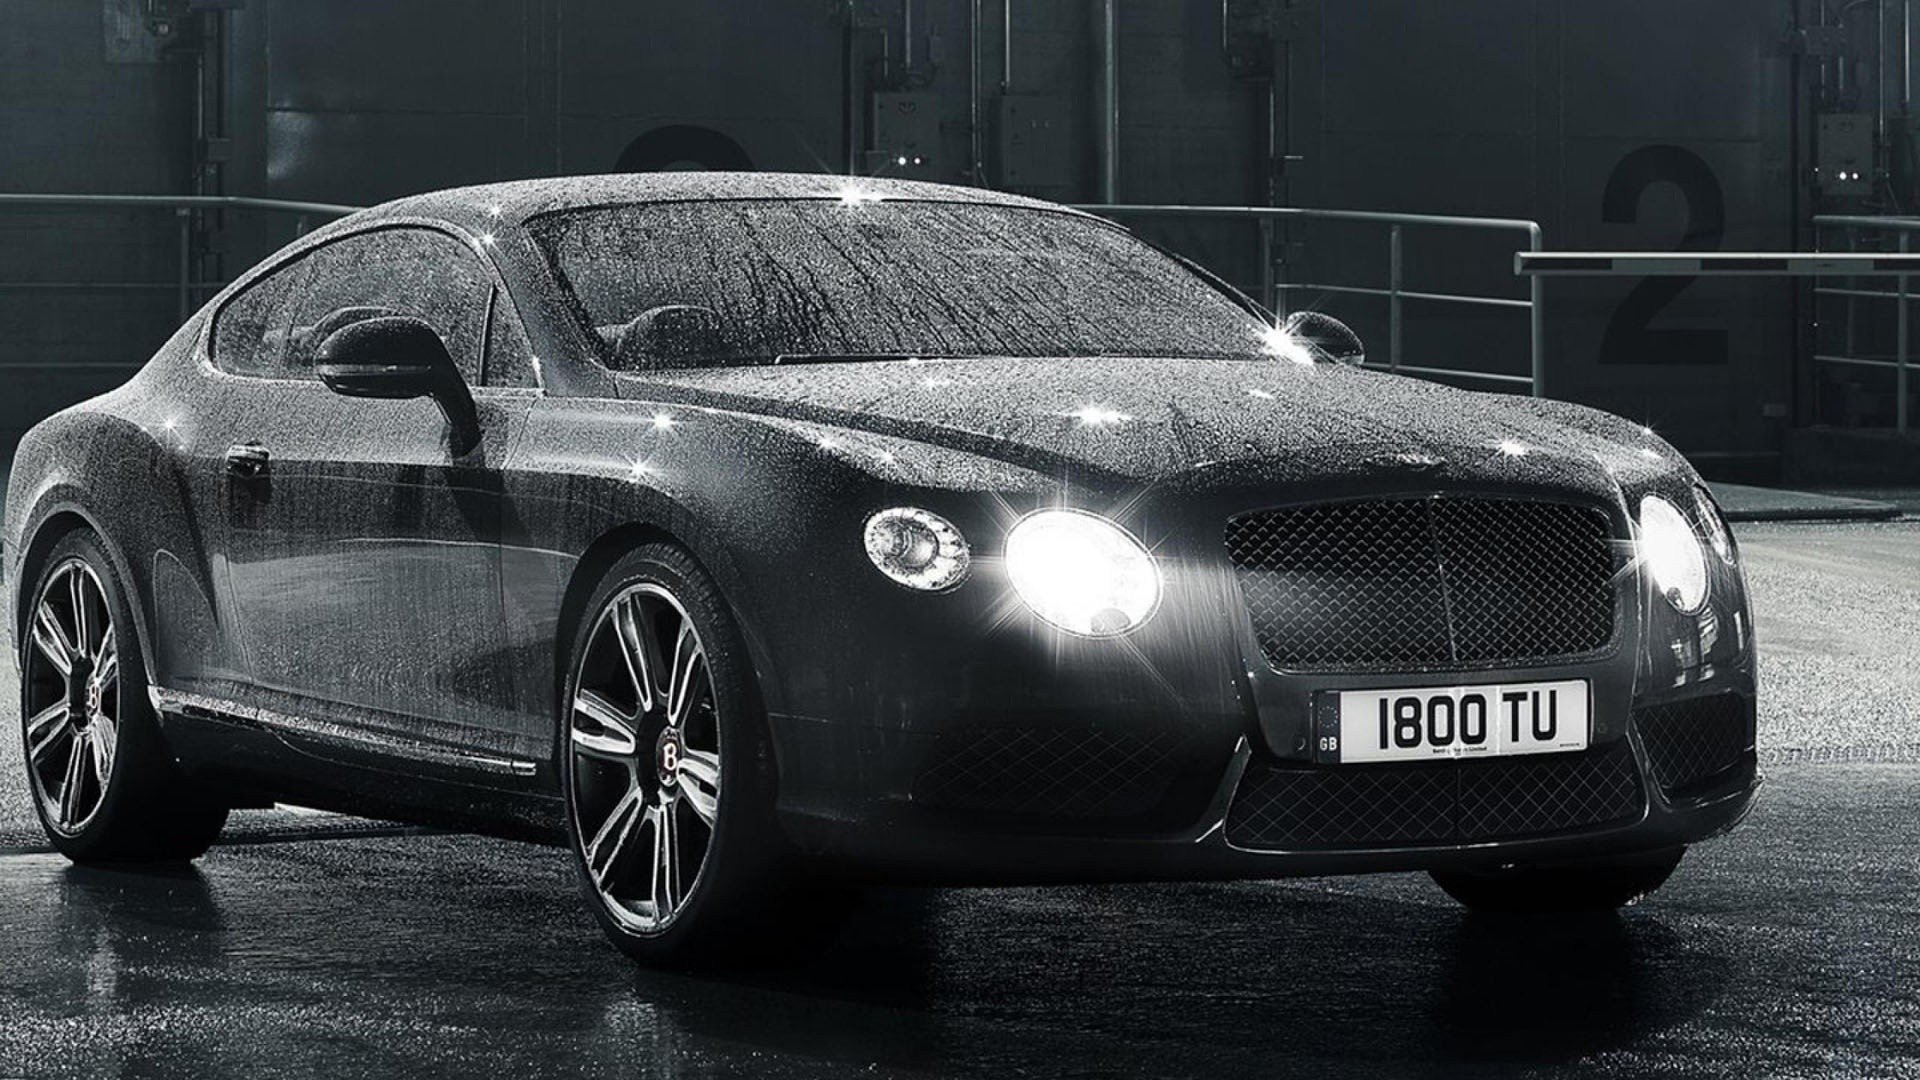 Latest Bentley Continental Wallpaper Desktop 496 Wallpaper Free Download